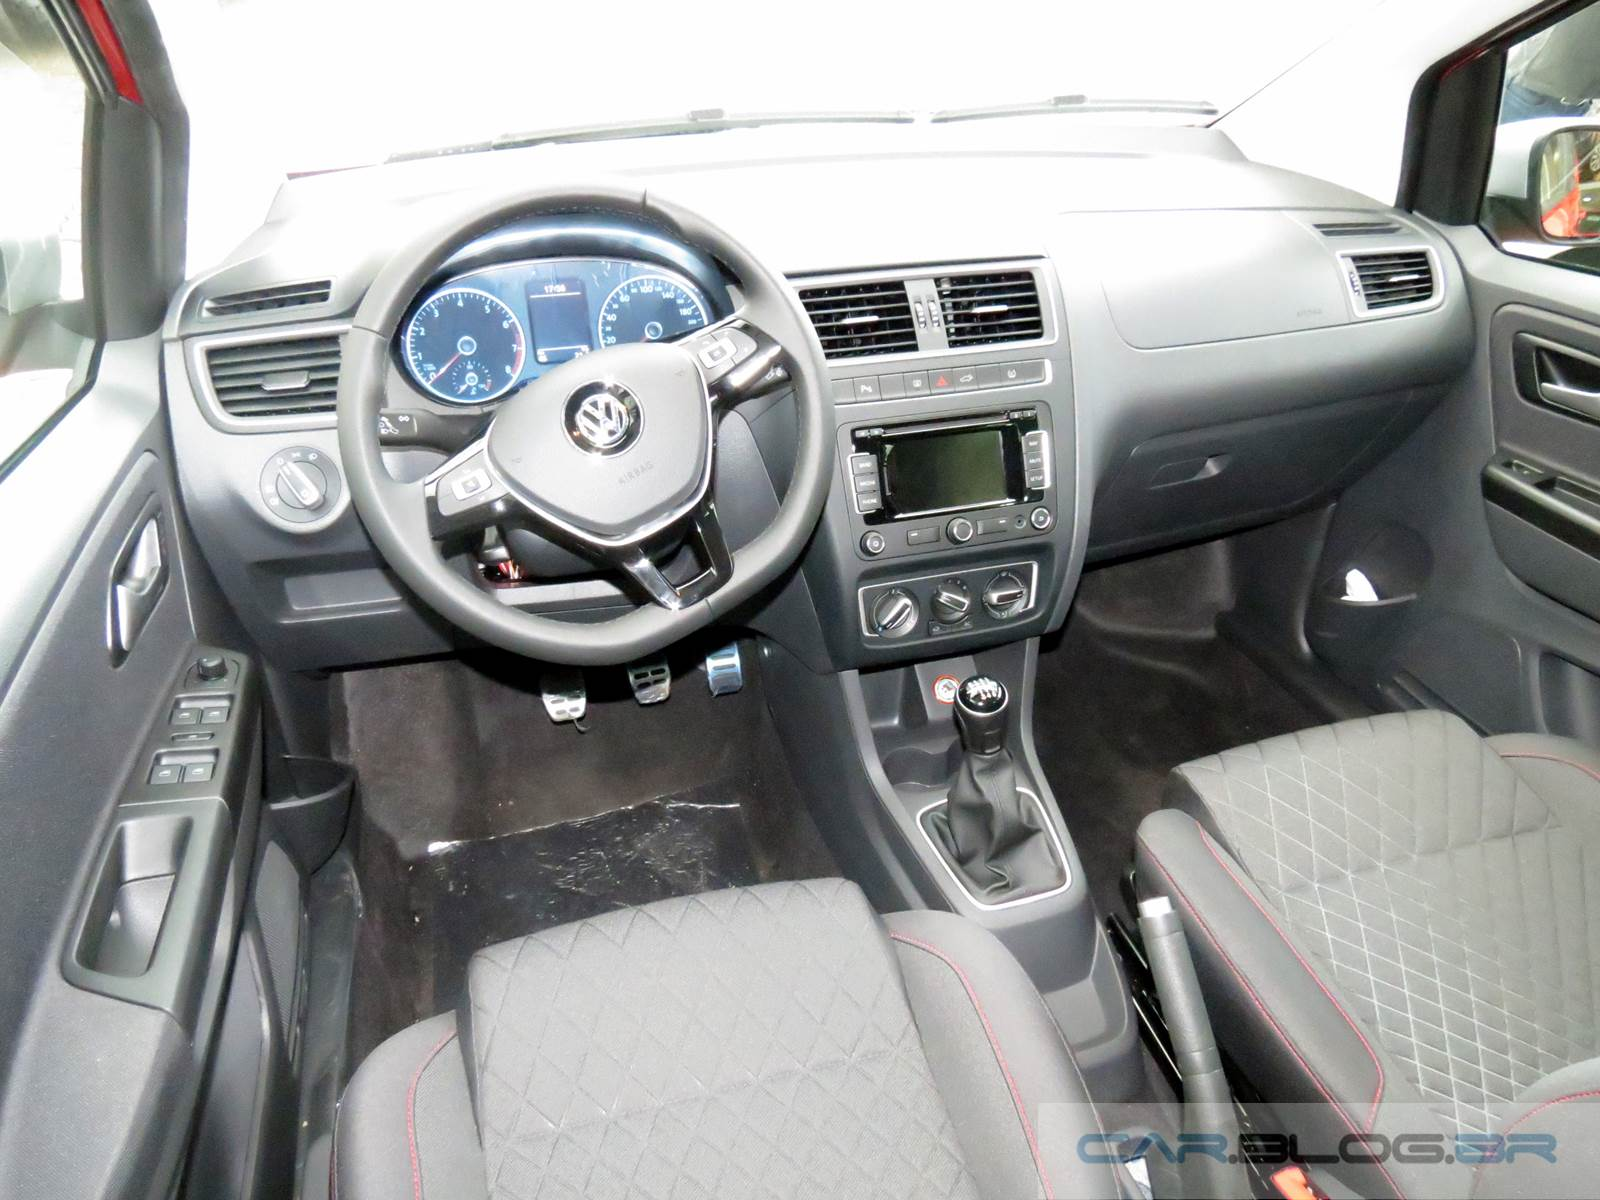 Novo VW CrossFox 2015 - interior